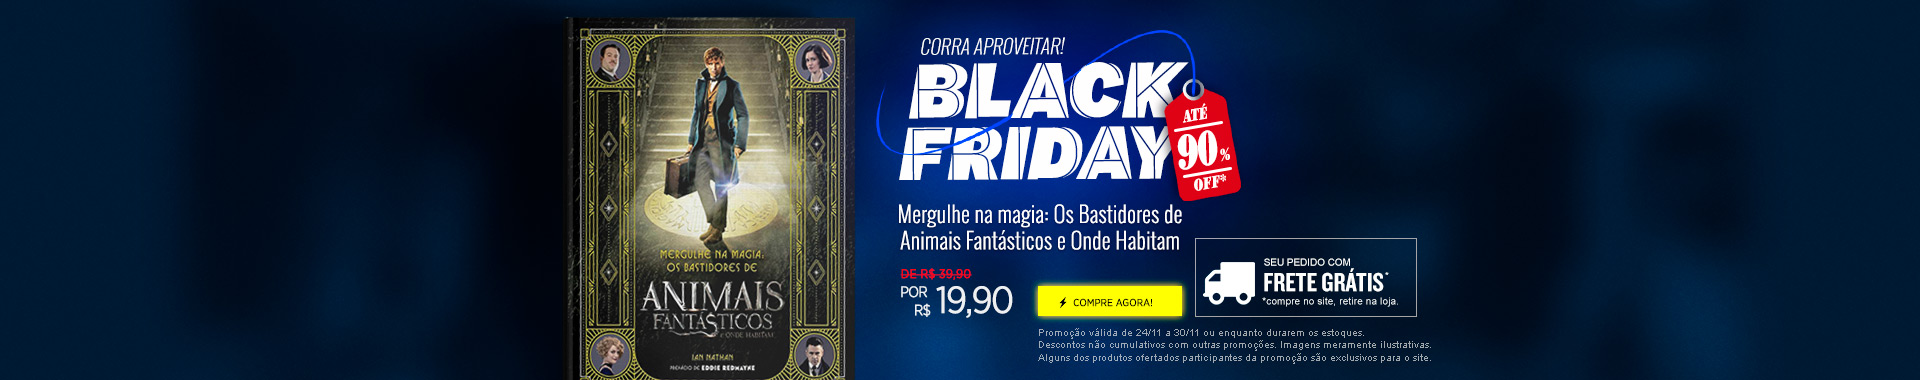 Black Friday 01